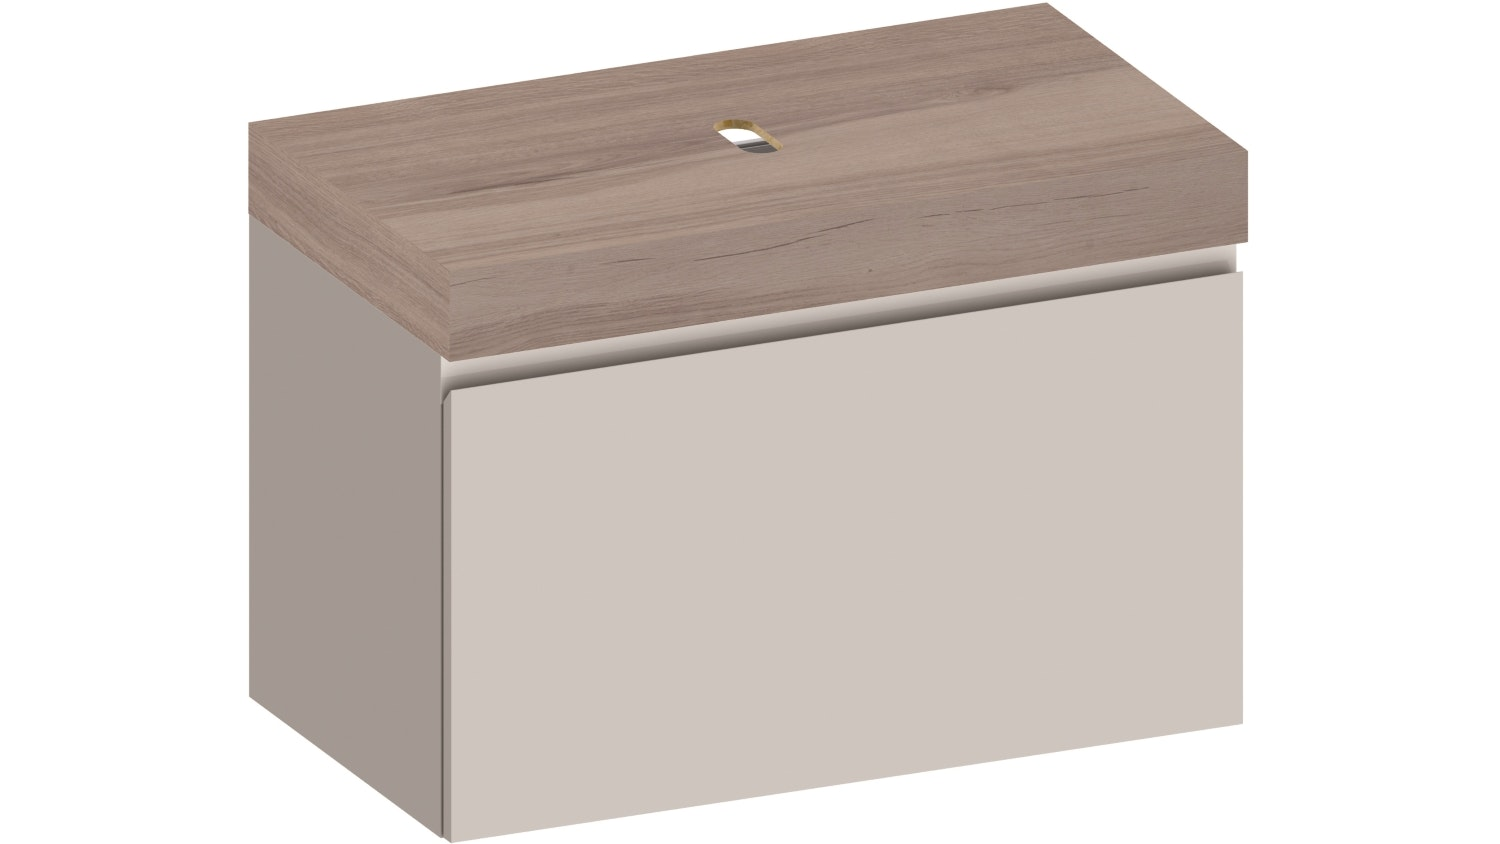 Kokoon Elements 900 Wall Mounted Vanity With HPL Rovere Wafer Top - White